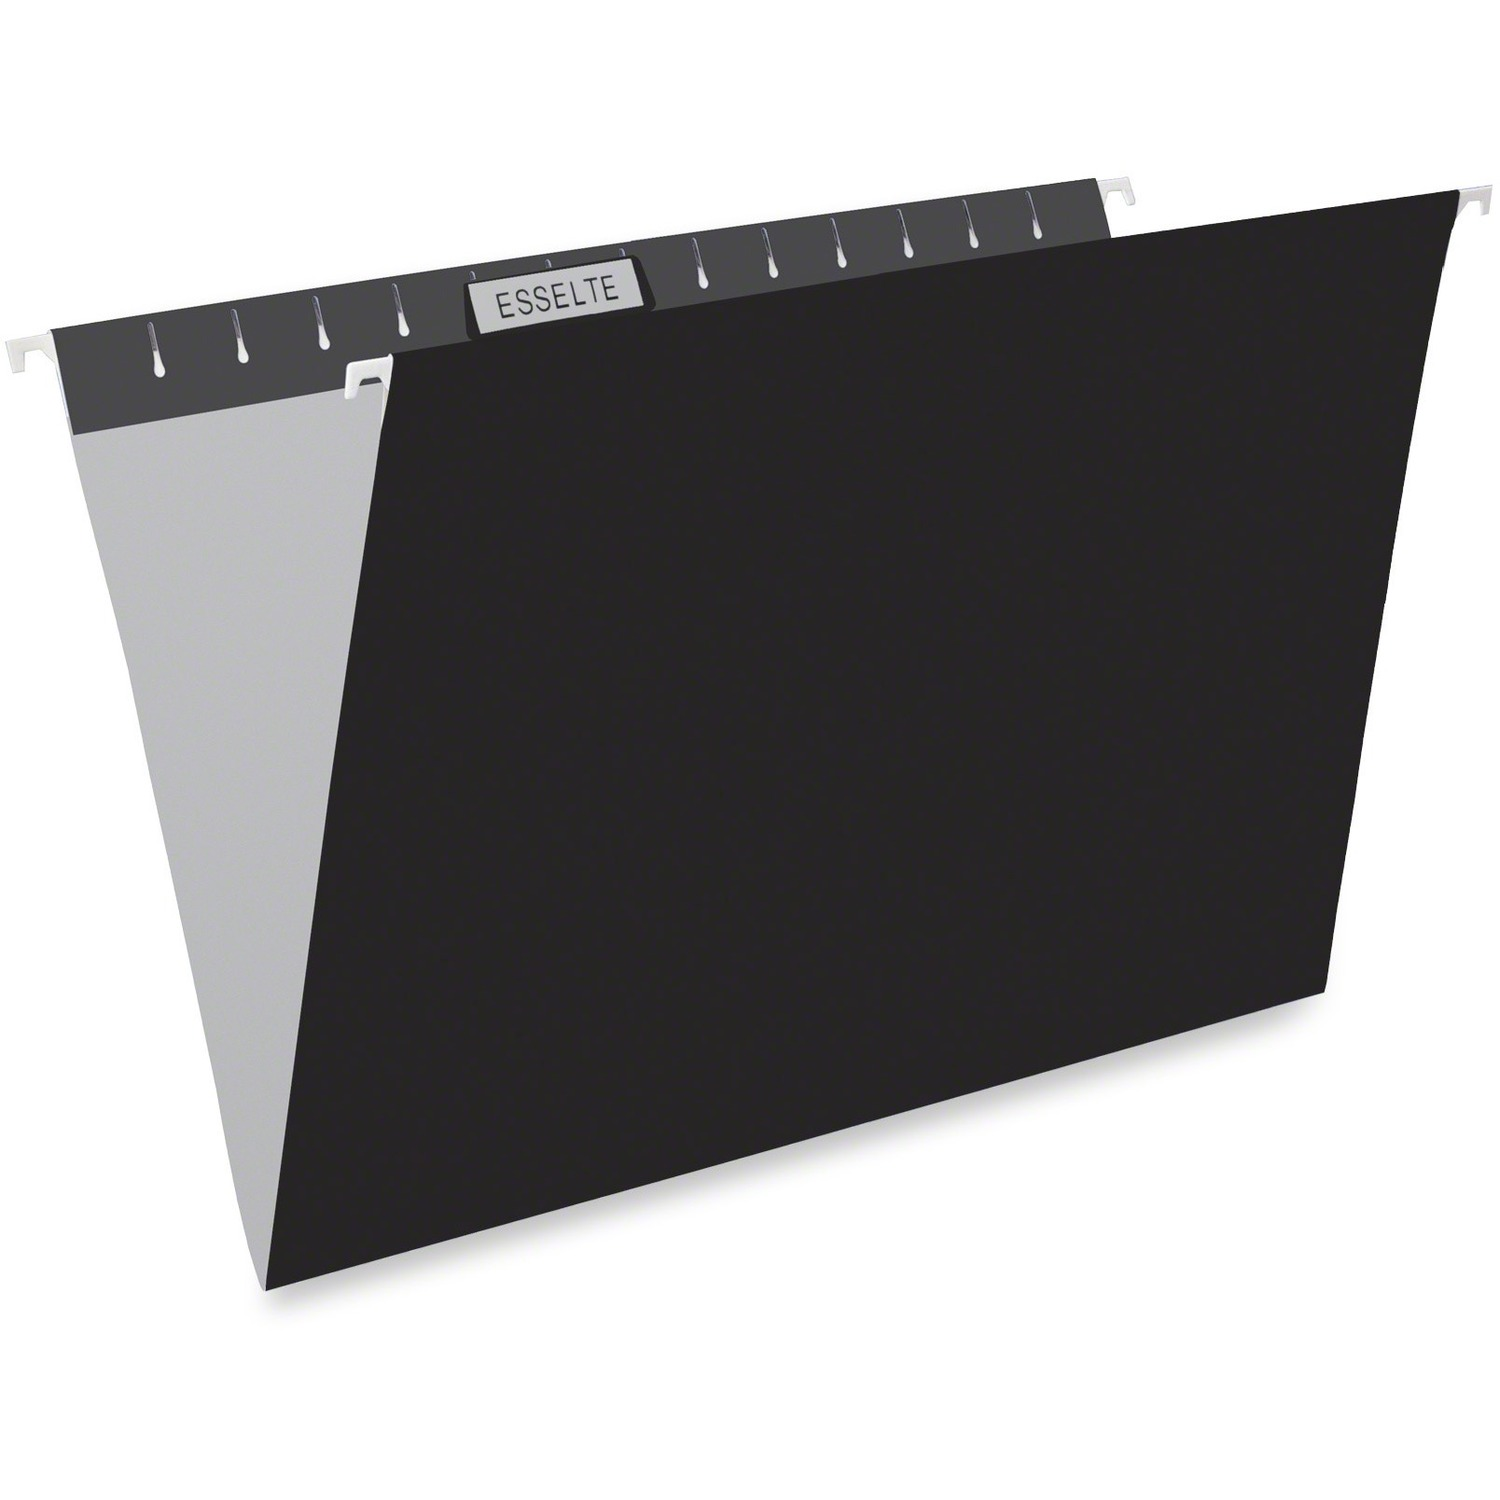 Esselte Oxford Hanging File Folder Madill The Office